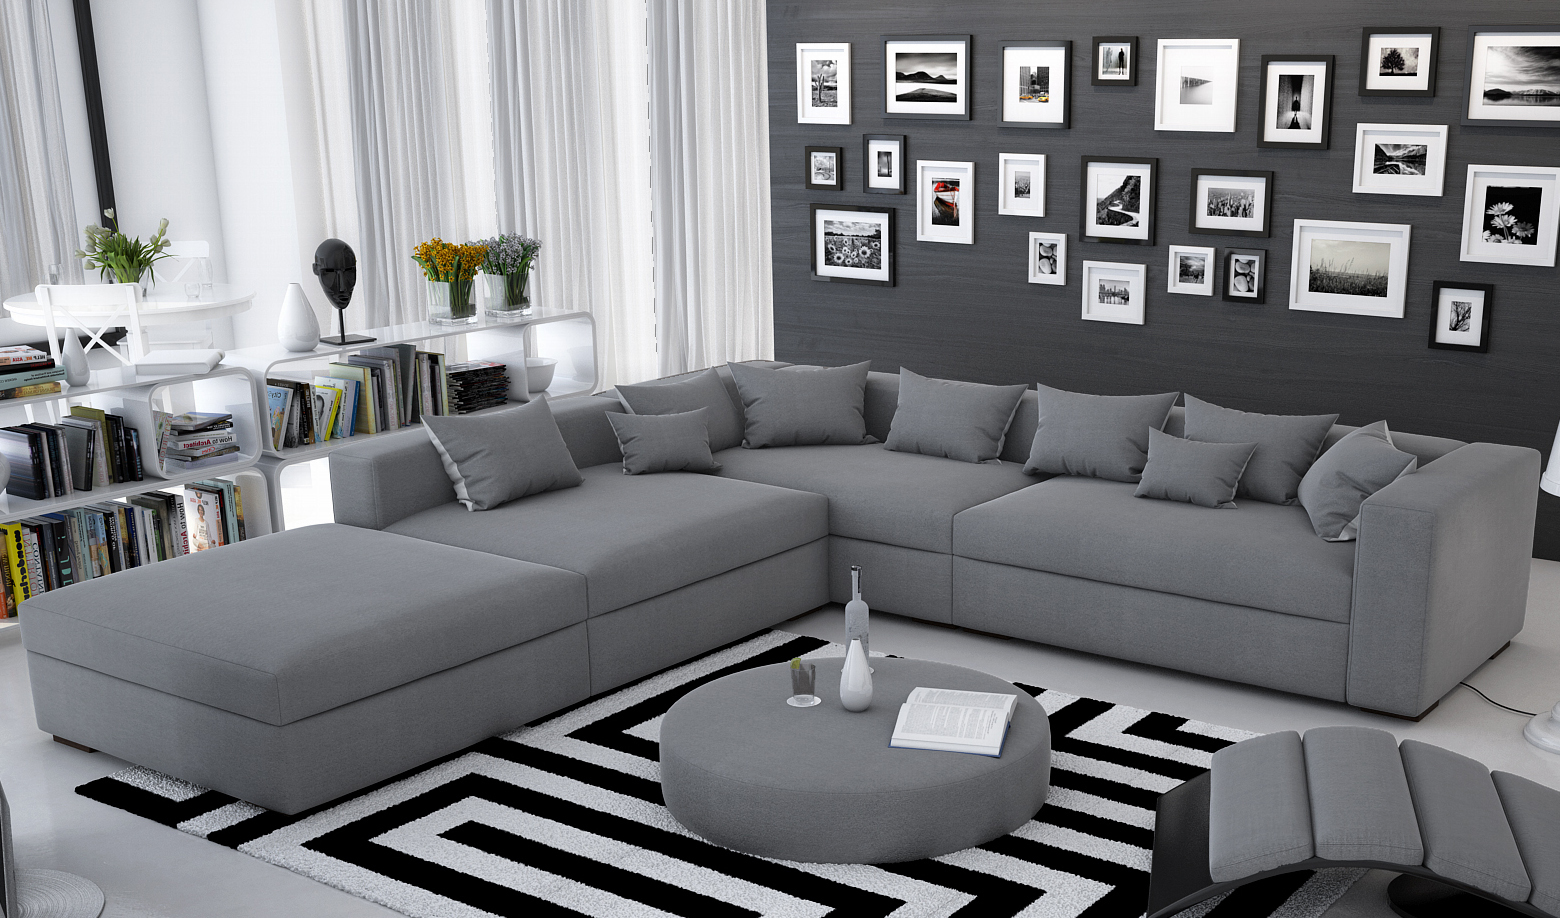 sam ecksofa grau valdivia polsterecke 330 x 320 cm mit hocker. Black Bedroom Furniture Sets. Home Design Ideas